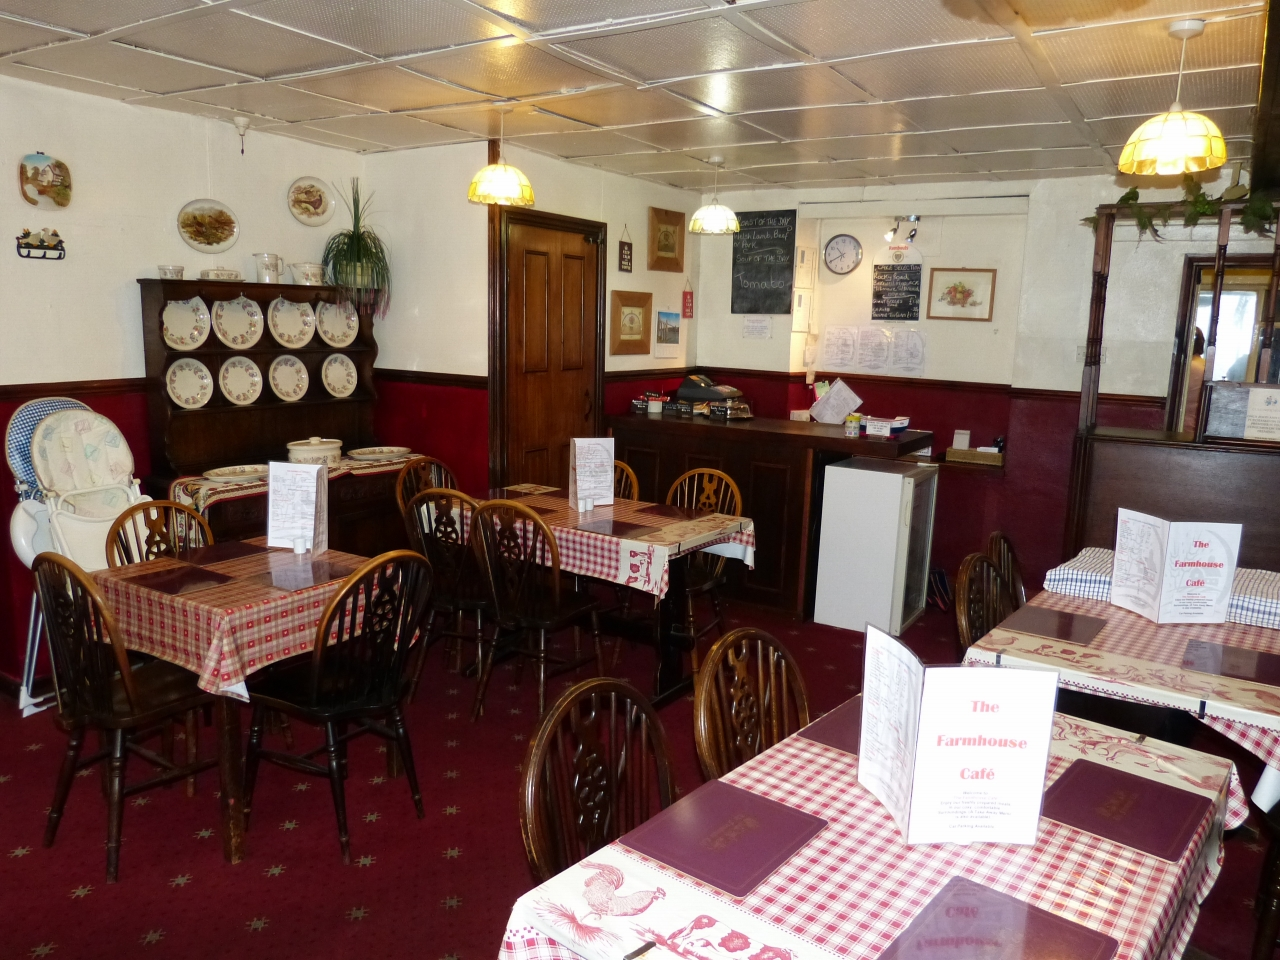 Restaurant For Sale in Abergele - Photograph 5